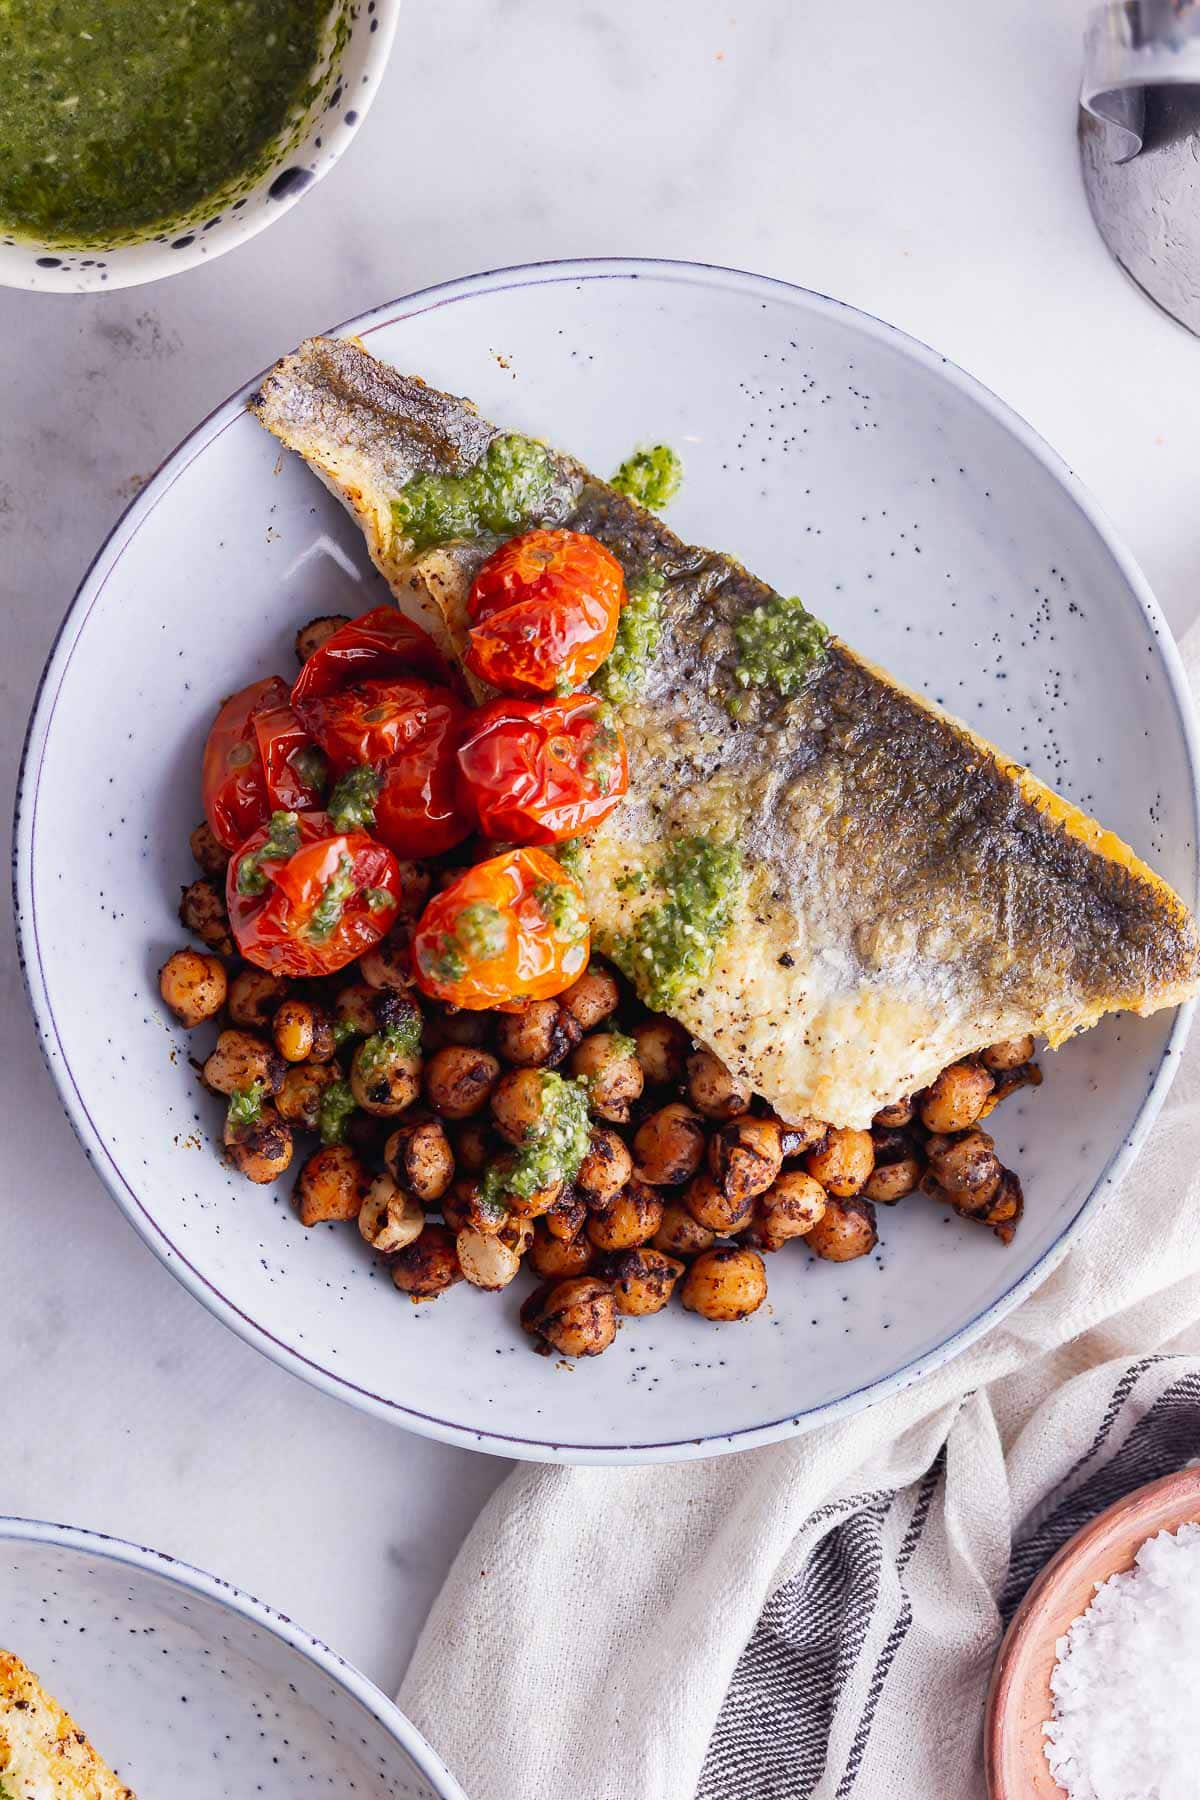 Overhead shot of crispy skin sea bass with tomatoes and chickpeas